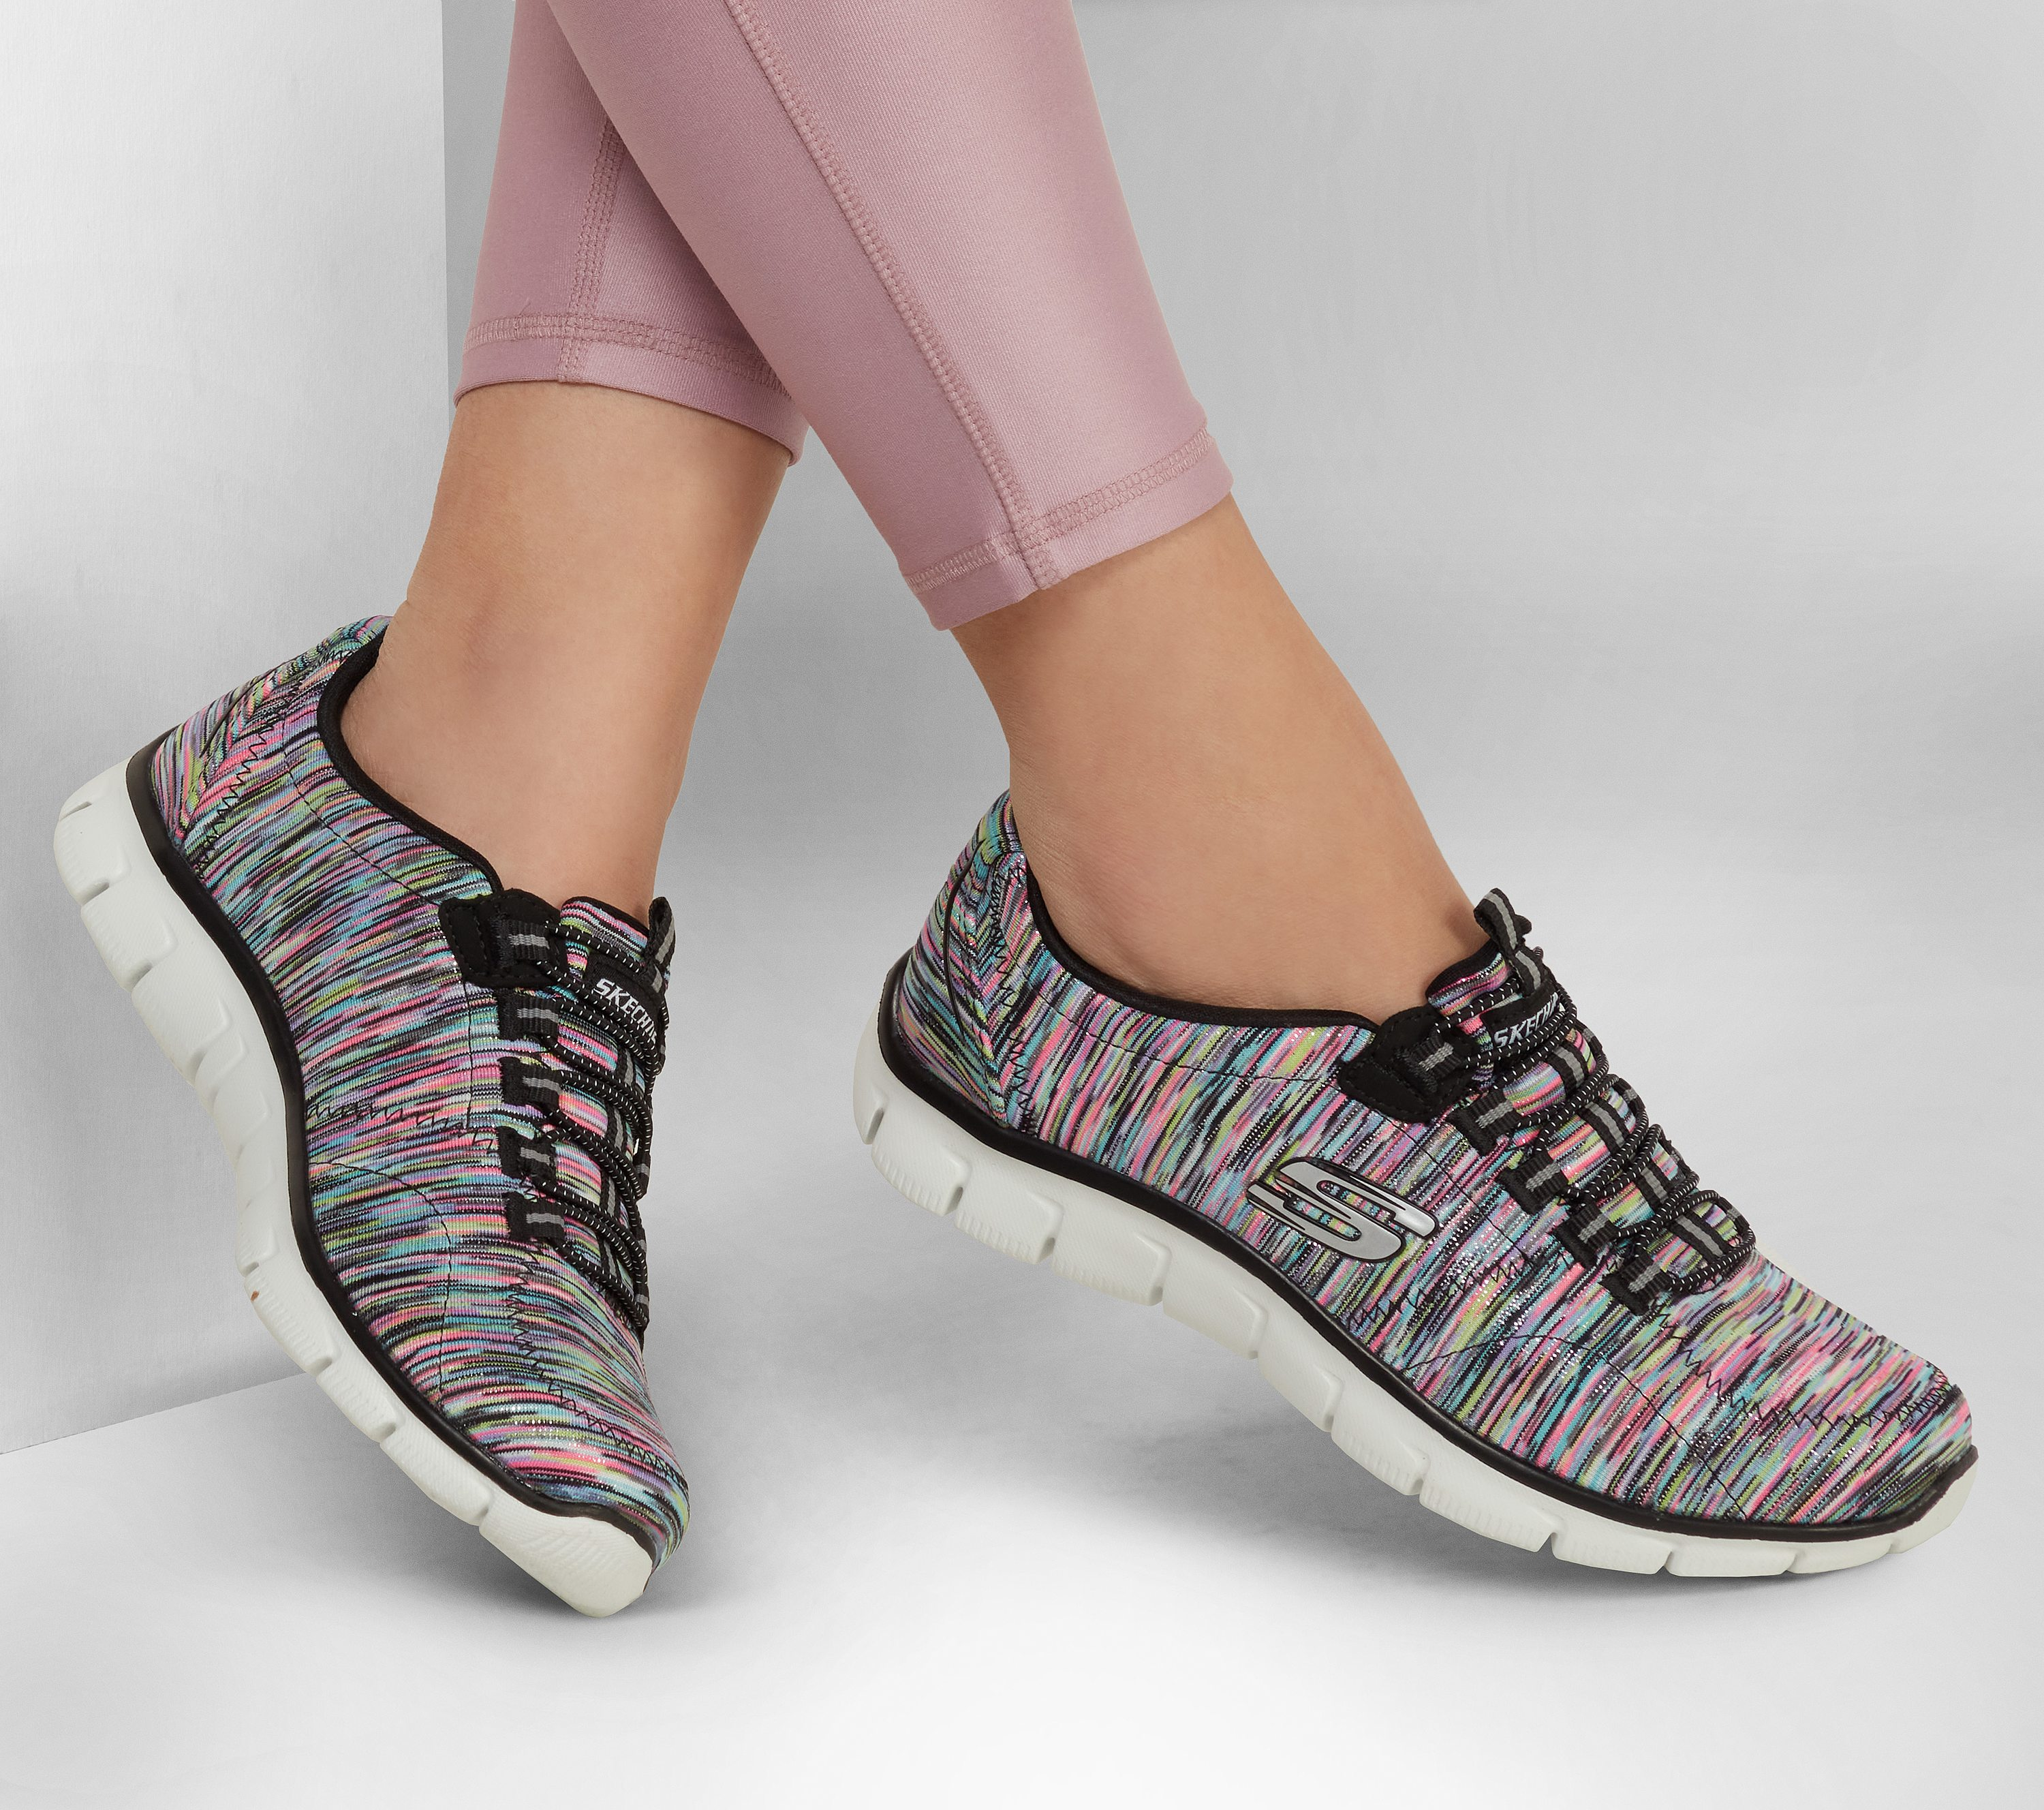 skechers relaxed fit empire game on walking shoe (women's)